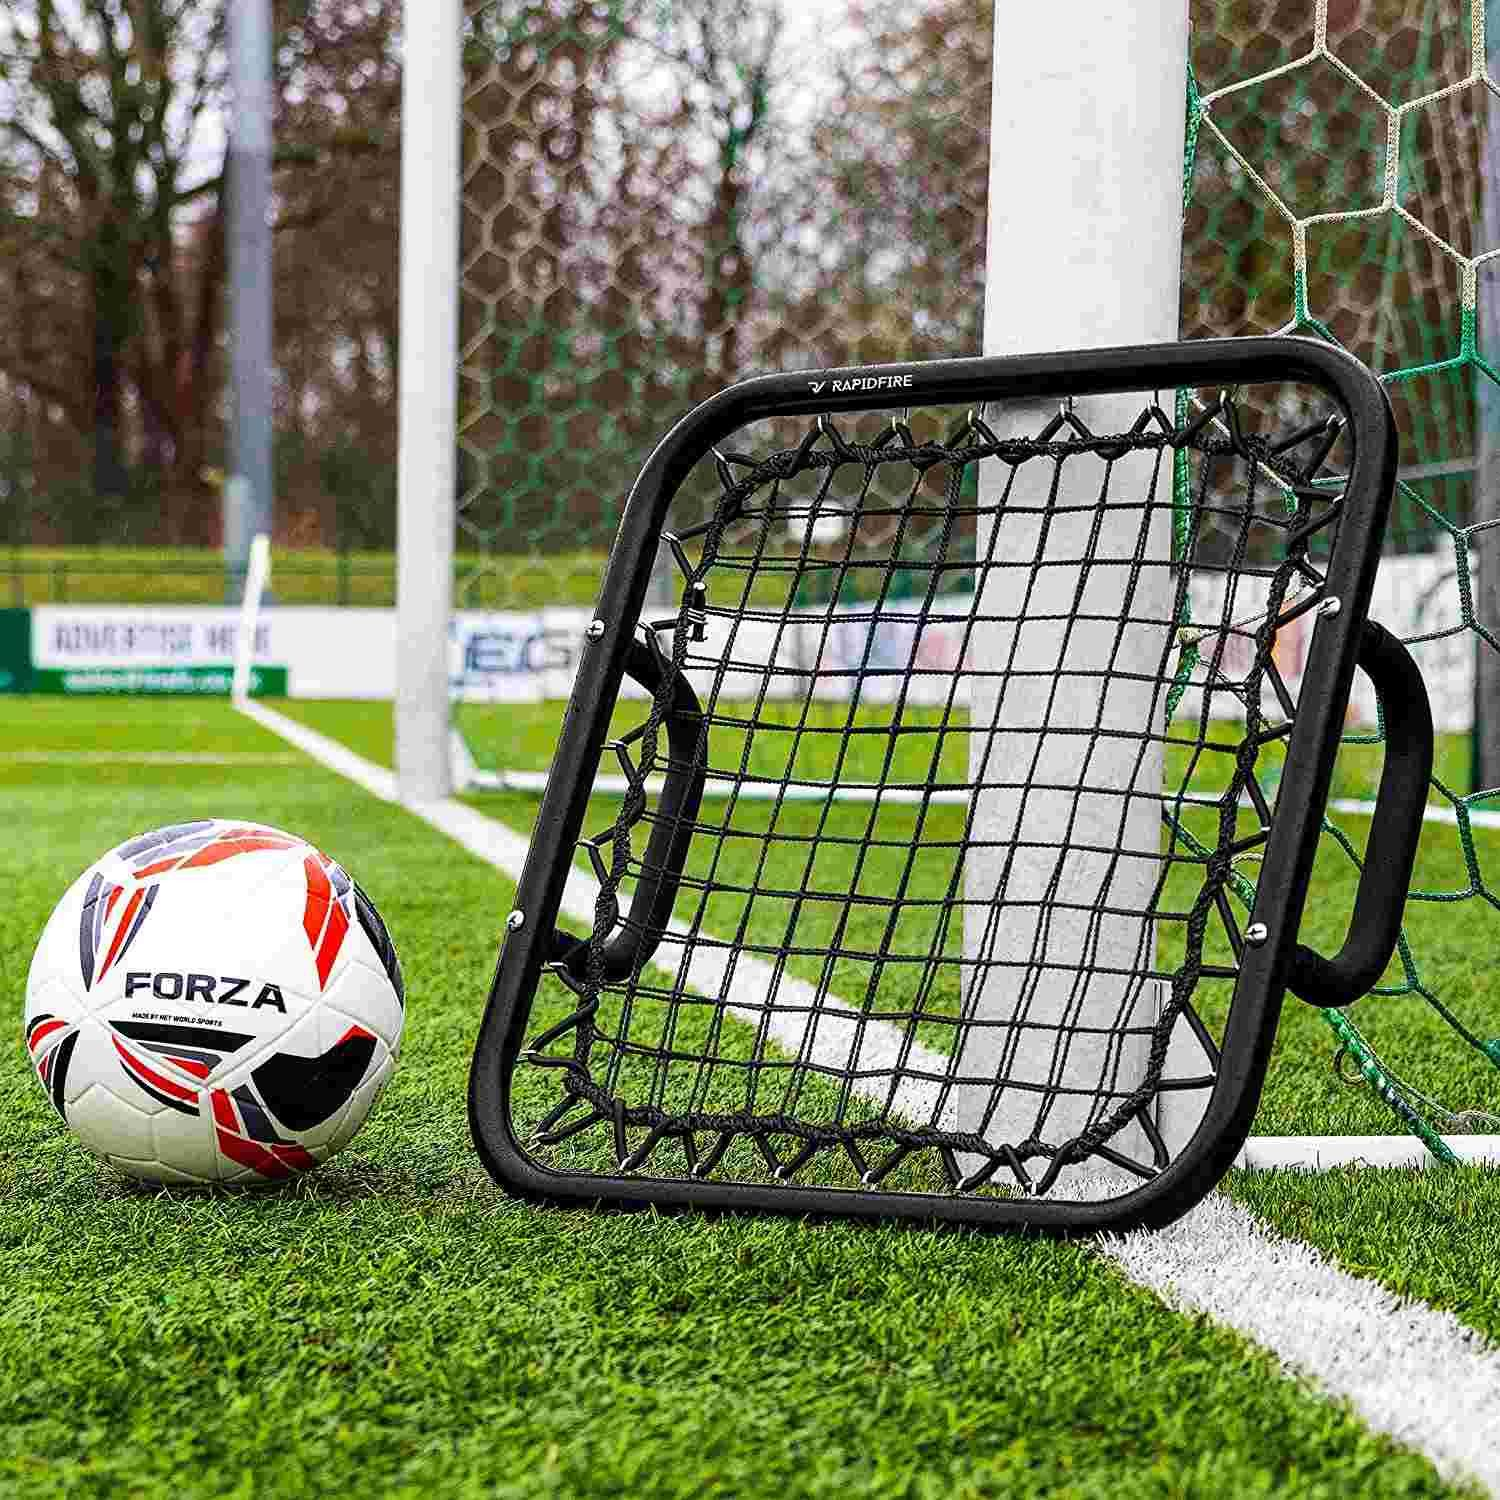 How To Build A Pvc Soccer Rebounder For Kids In 2020 Soccer Rebounder Goalkeeper Training Soccer Training Equipment